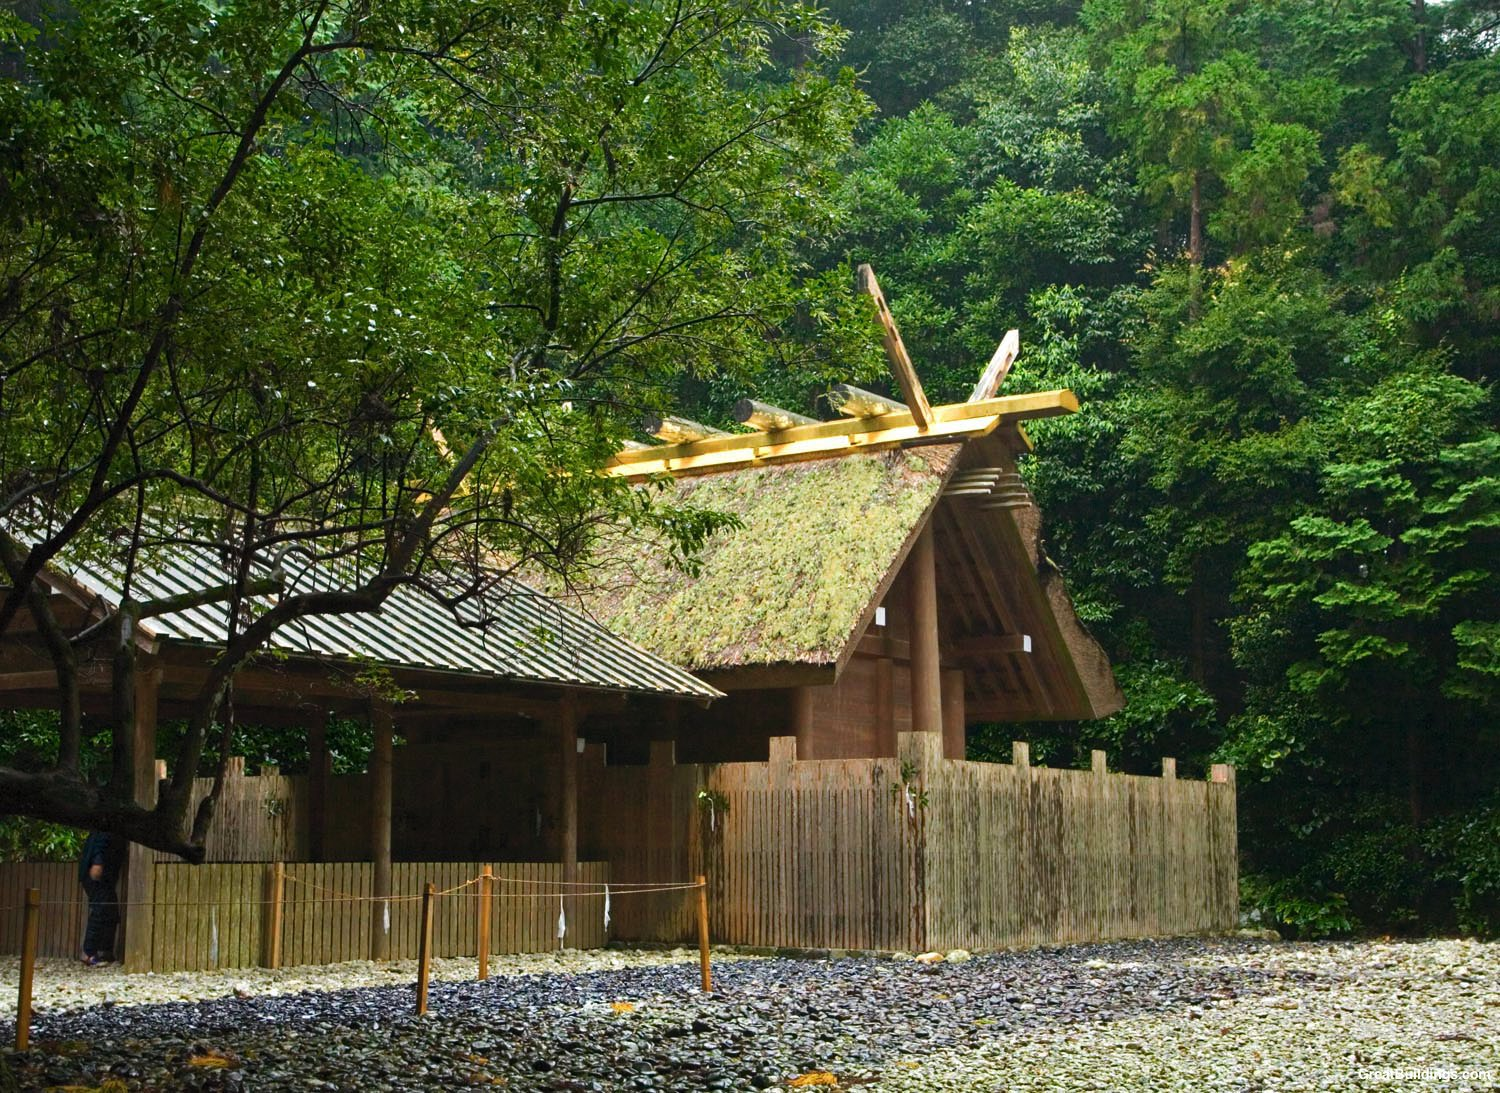 Great Buildings Image - Ise Shrine